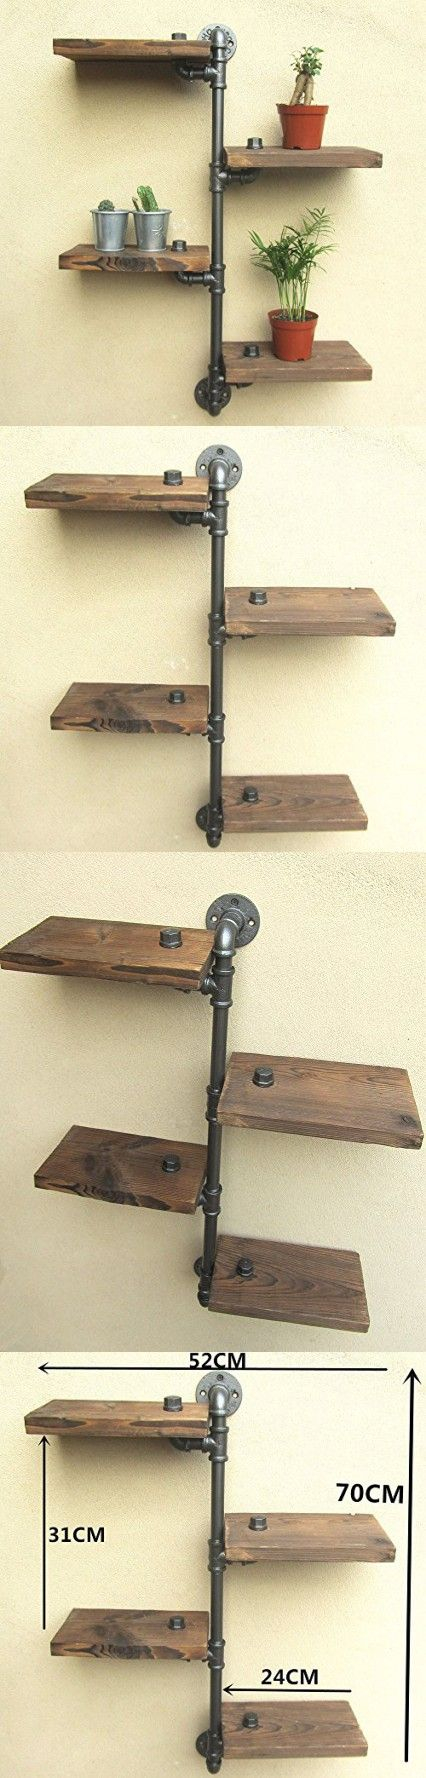 Vintage Home Decor-URBAN INDUSTRIAL RUSTIC WALL MOUNT IRON PIPE 4 TIERS WOOD SHELF SHELVING STORAGE